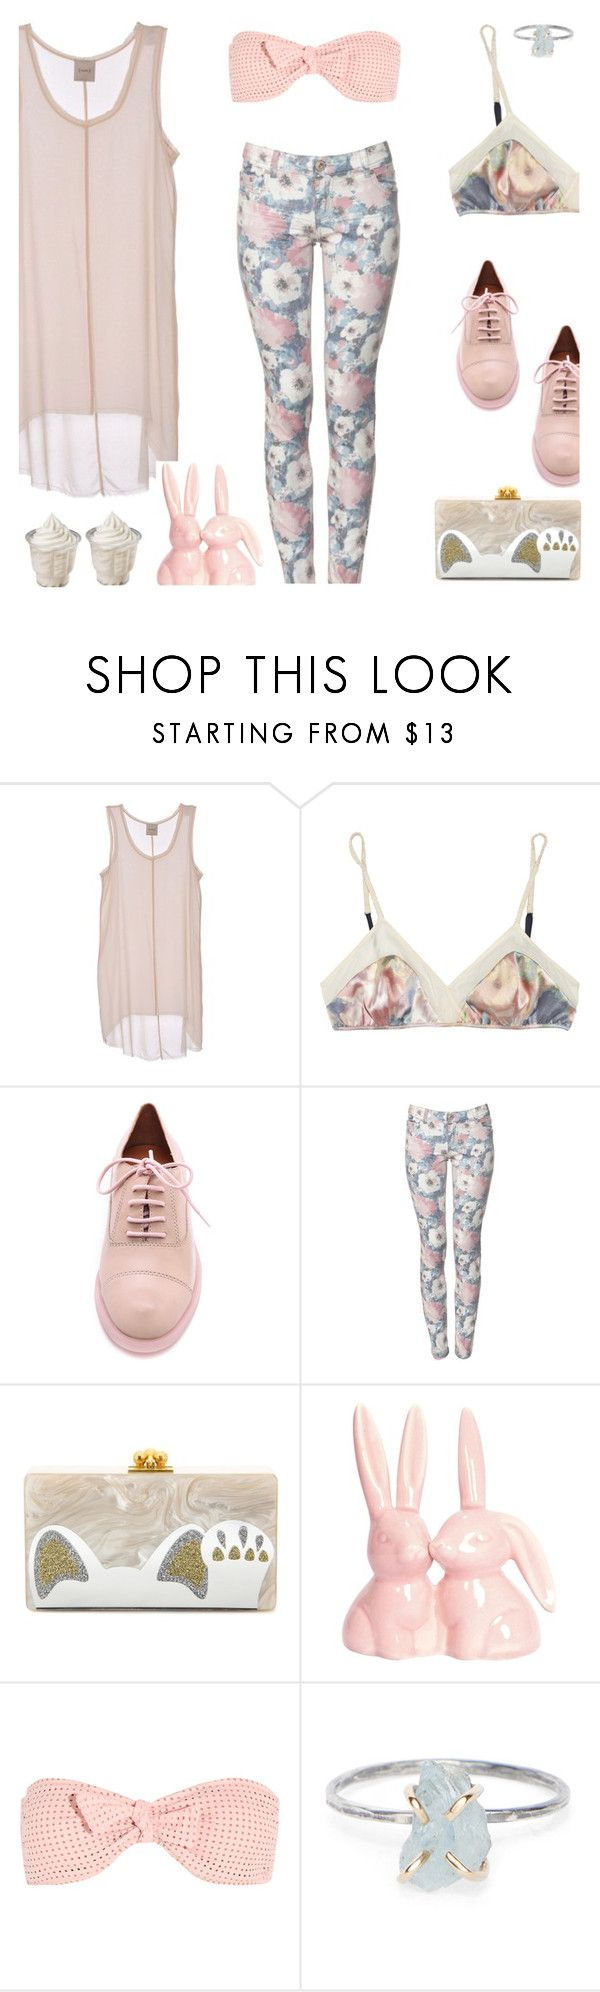 """""""soft"""" by alongcametwiggy ❤ liked on Polyvore featuring Nude, 3.1 Phillip Lim, Marc by Marc Jacobs, Parisian, Edie Parker, Melissa Odabash and Rebecca Taylor"""